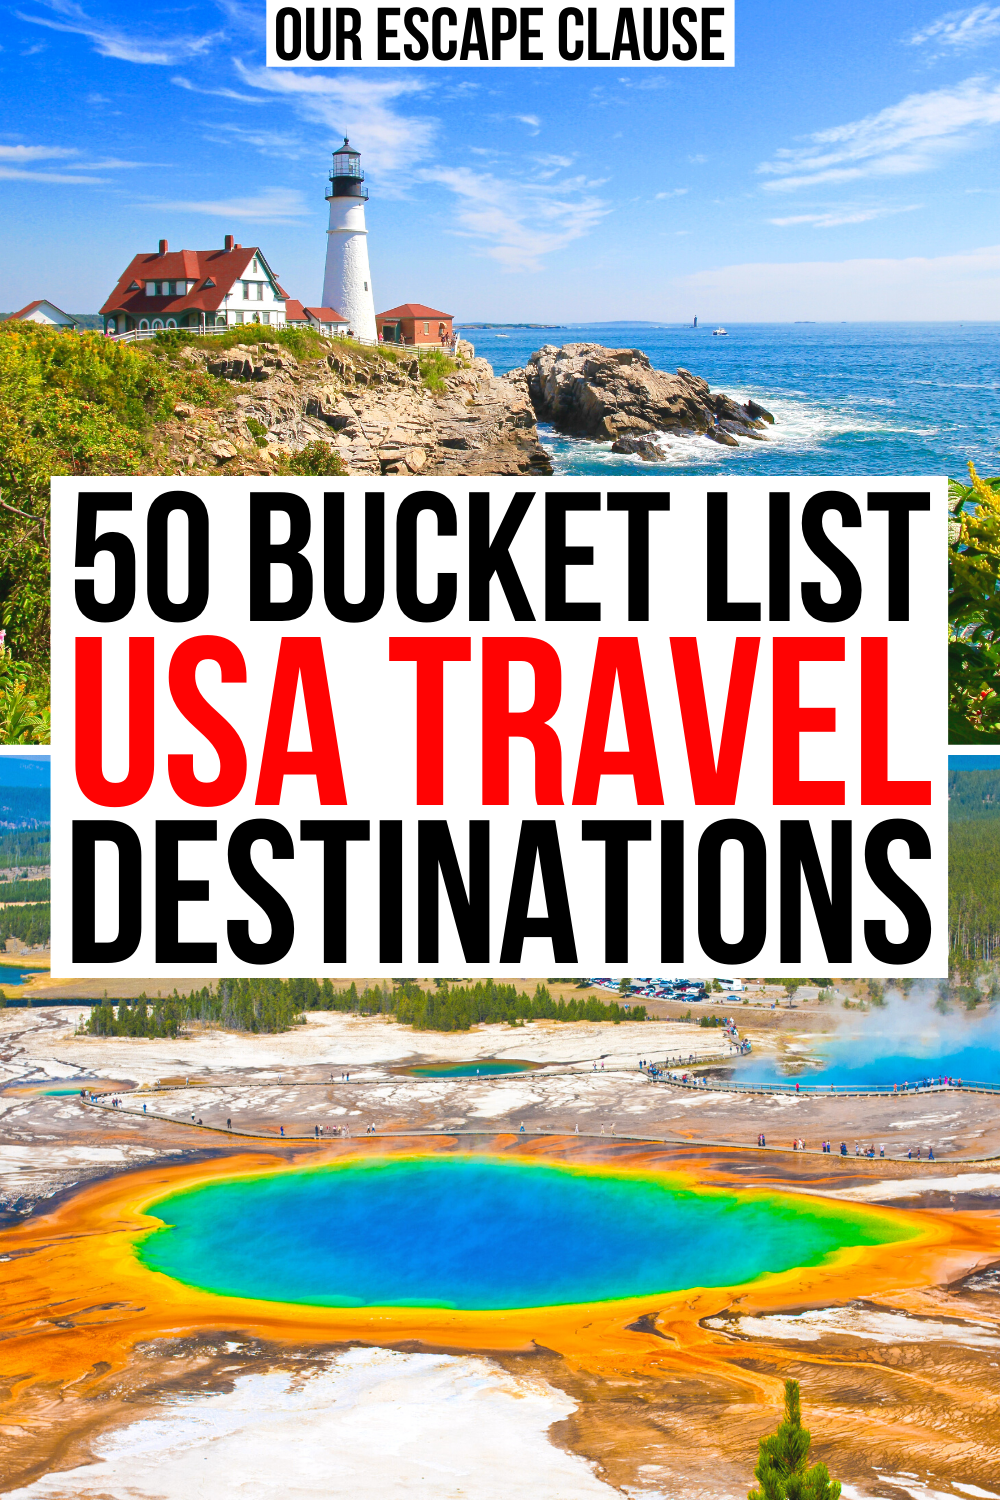 Usa Bucket List 50 Best Places To Visit In The Us Our Escape Clause Travel Usa Usa Places To Visit Usa Vacation Destinations